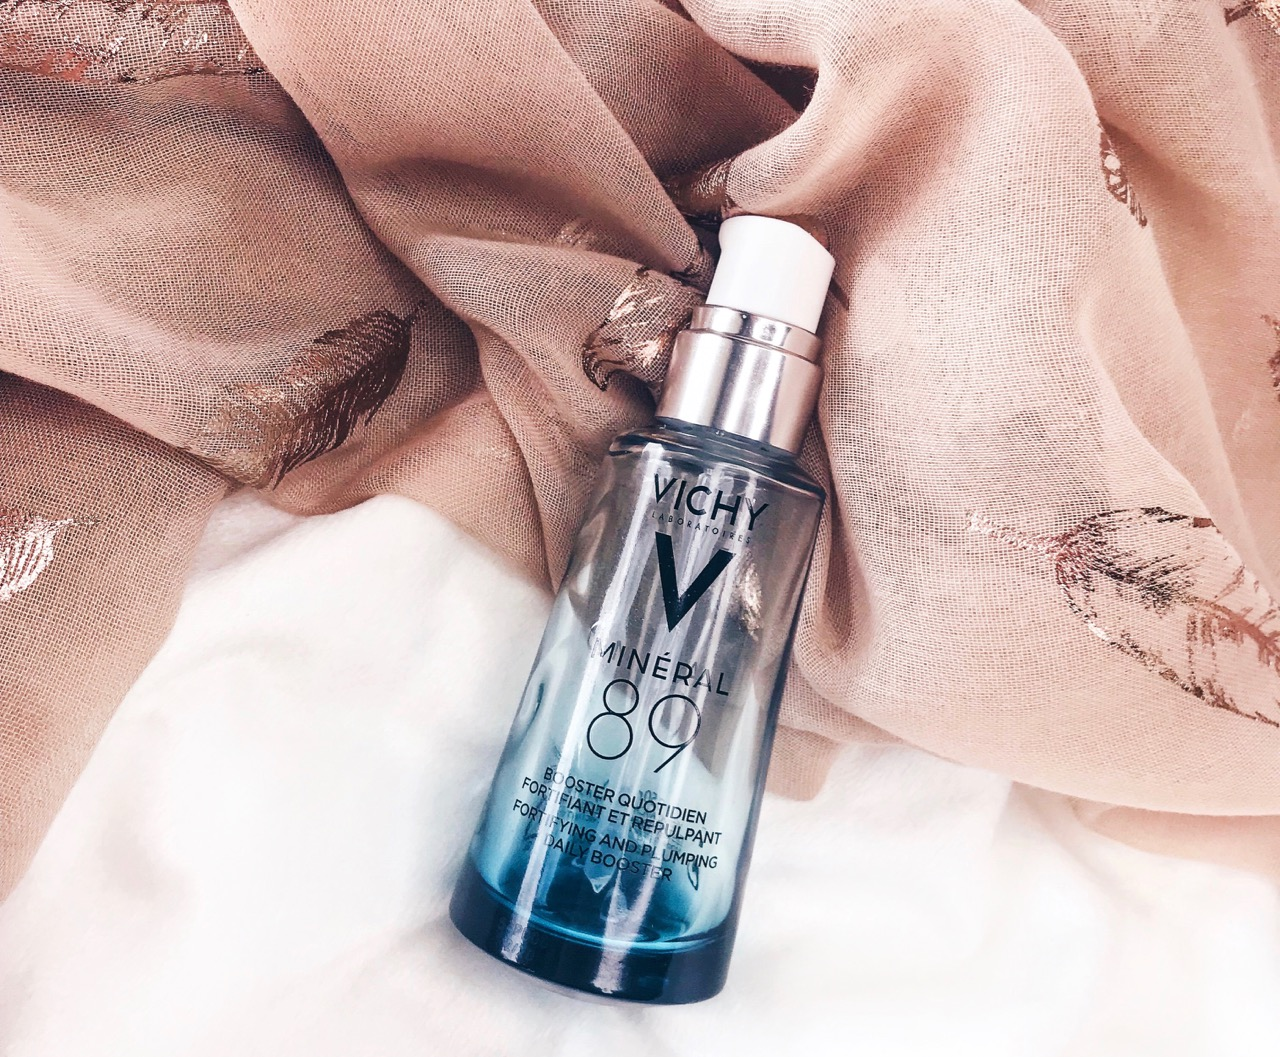 Beauty Favoriten Februar 2019: Vichy Mineral 89